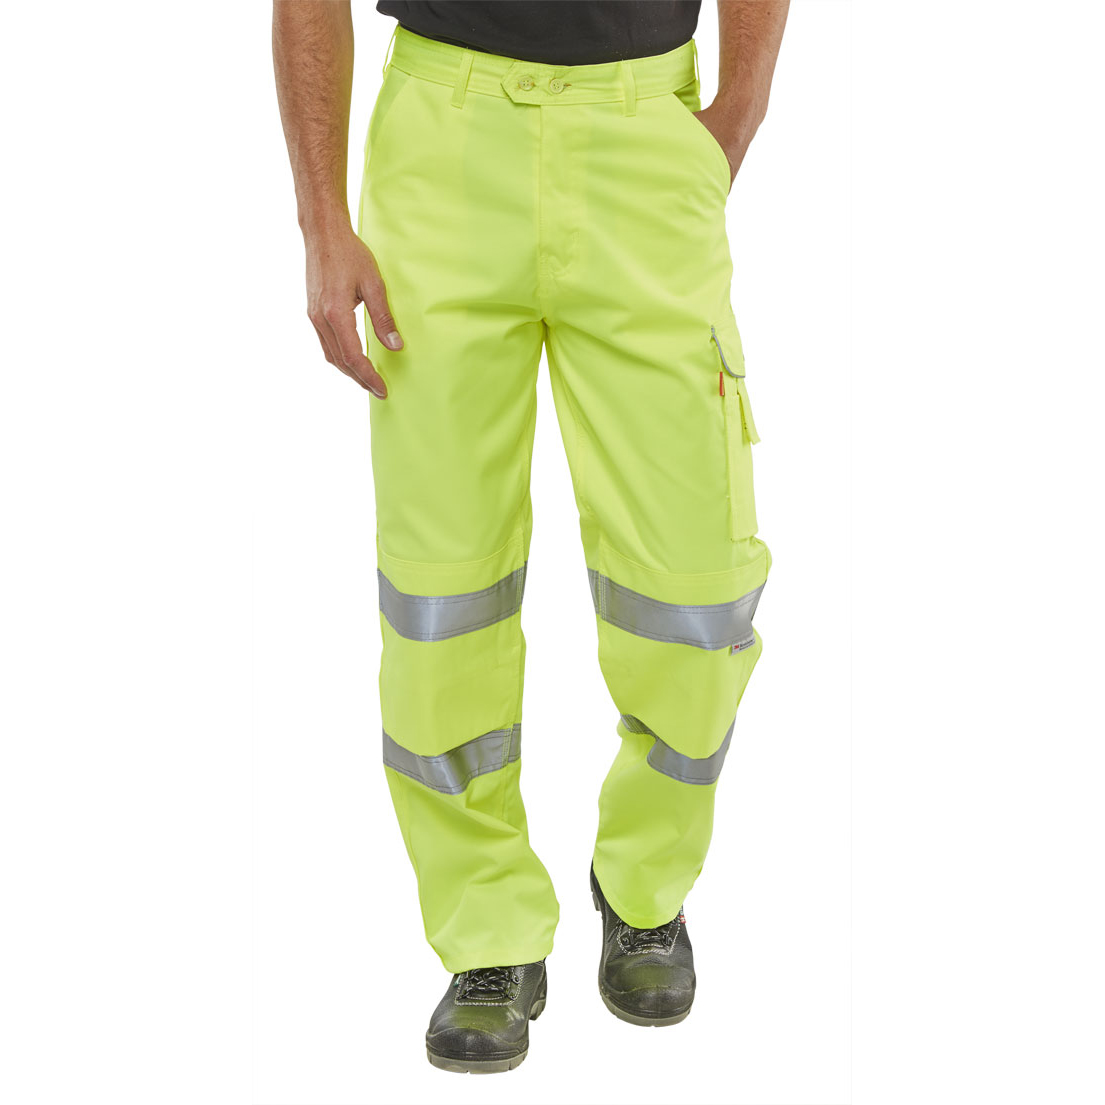 BSeen Polycotton Trousers EN ISO20471 Saturn Yellow 28 Long Ref PCTENSY28T *Up to 3 Day Leadtime*